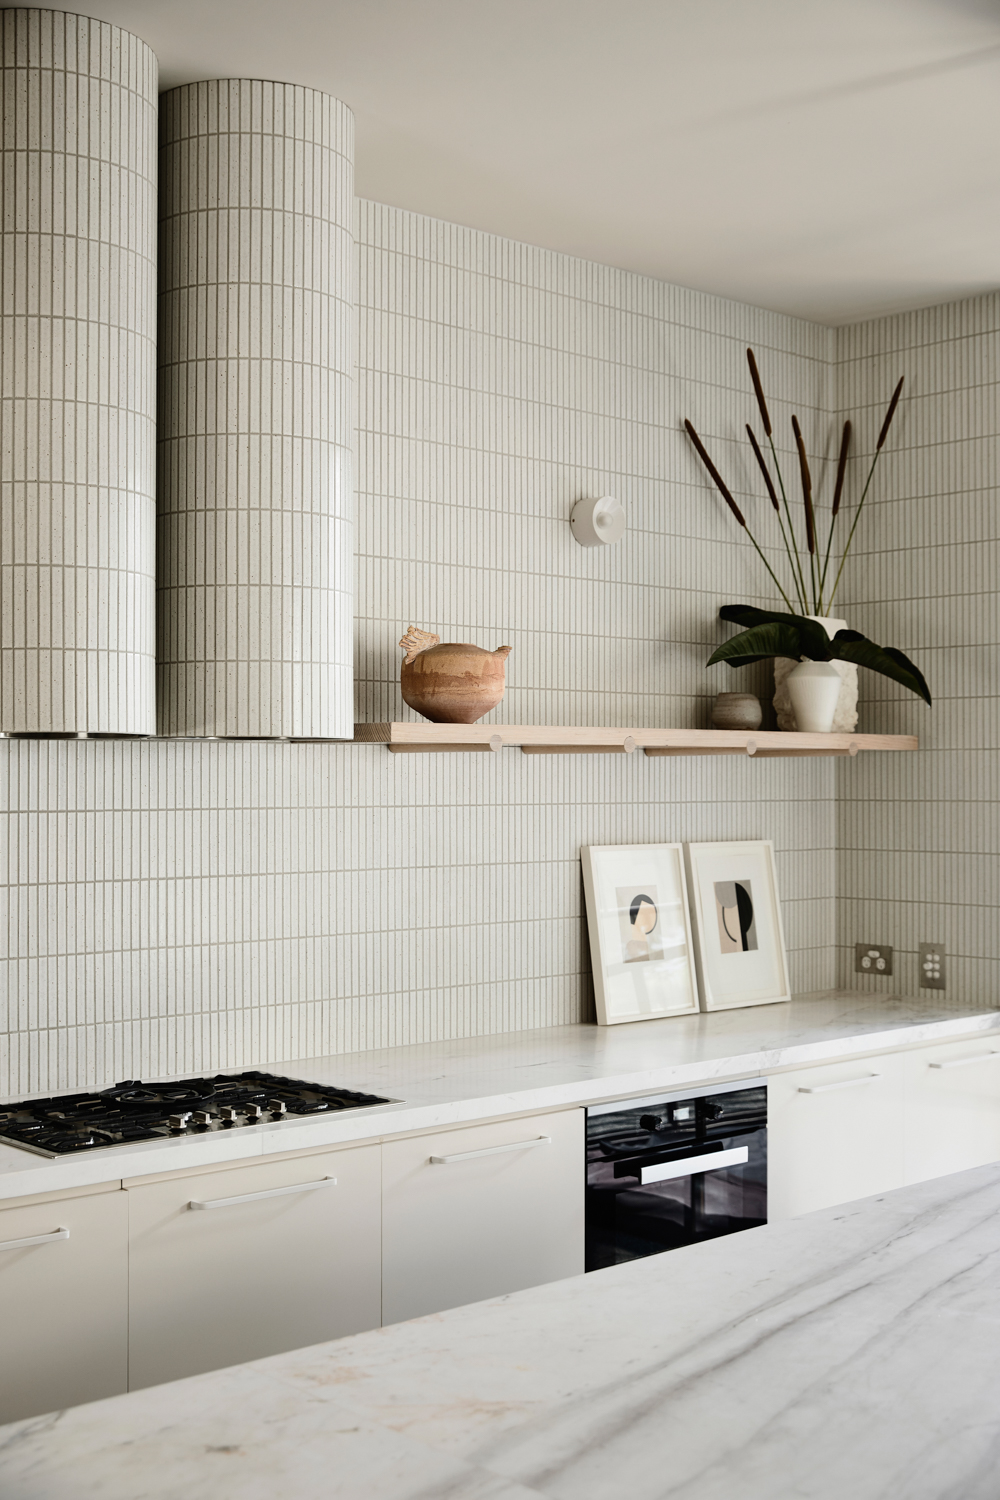 belle-coco-interior-kitchen-design-the-design-emotive-03.jpg